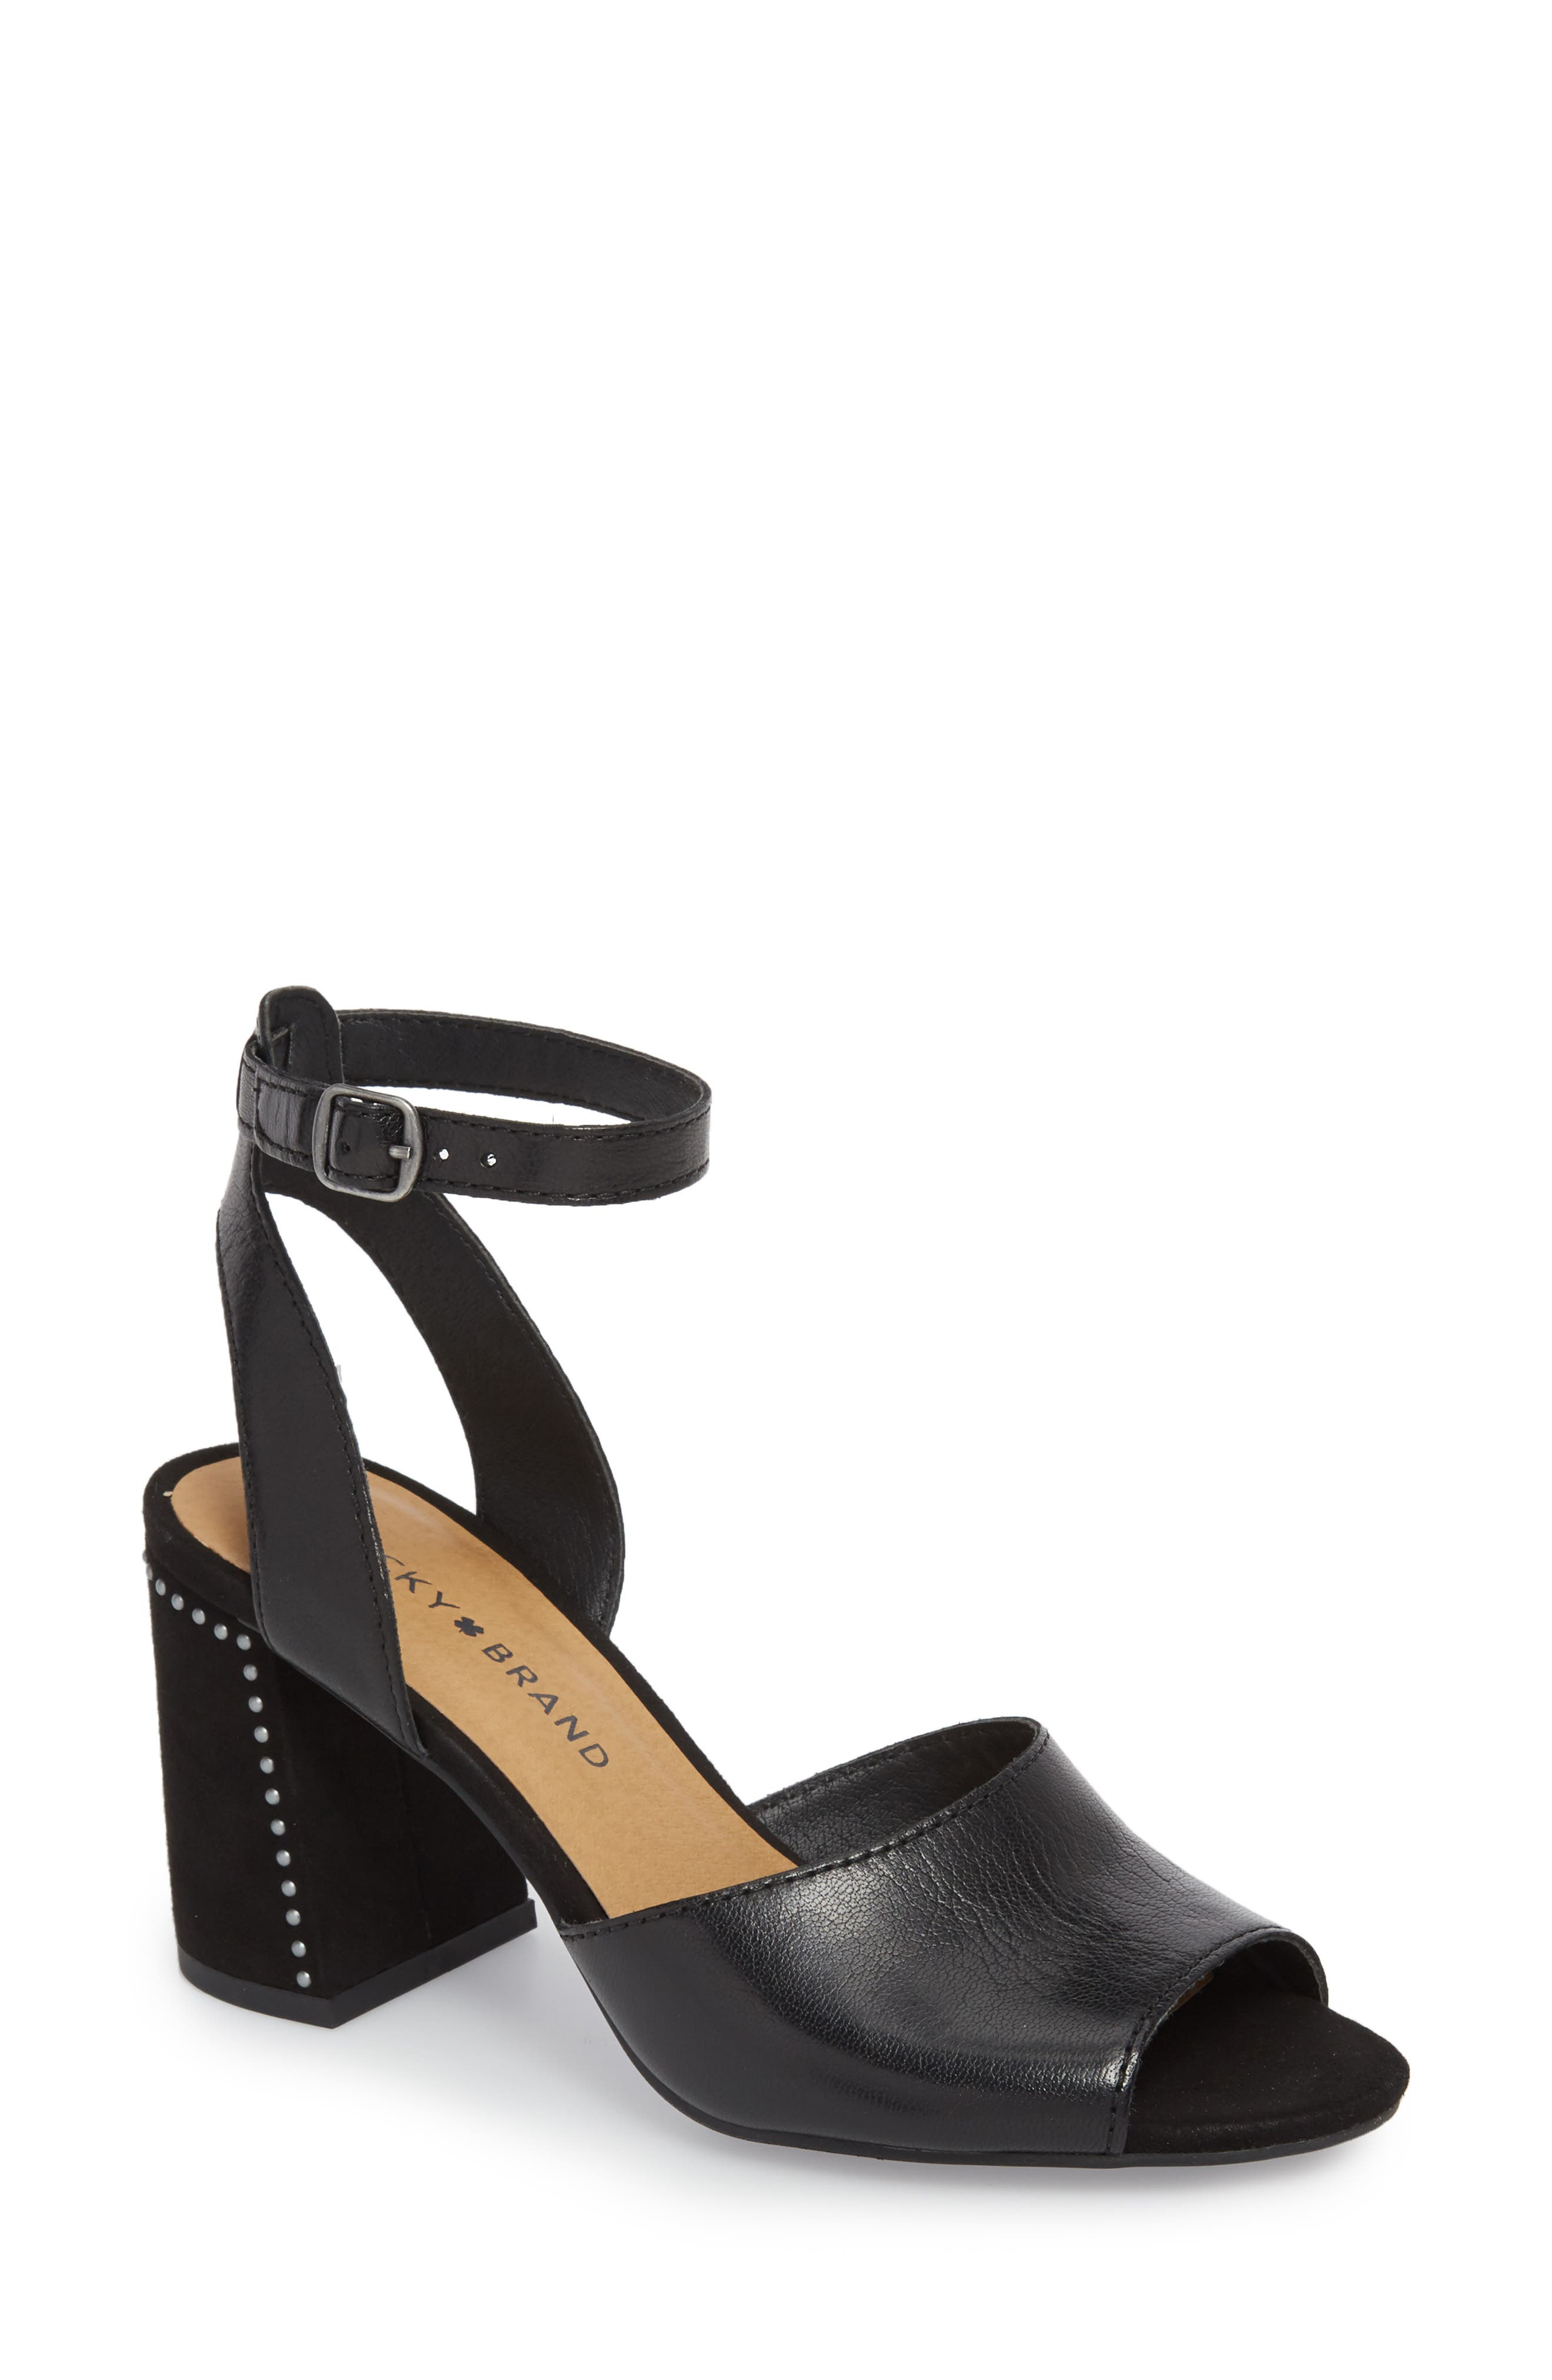 Verlena Sandal,                         Main,                         color, Black Leather